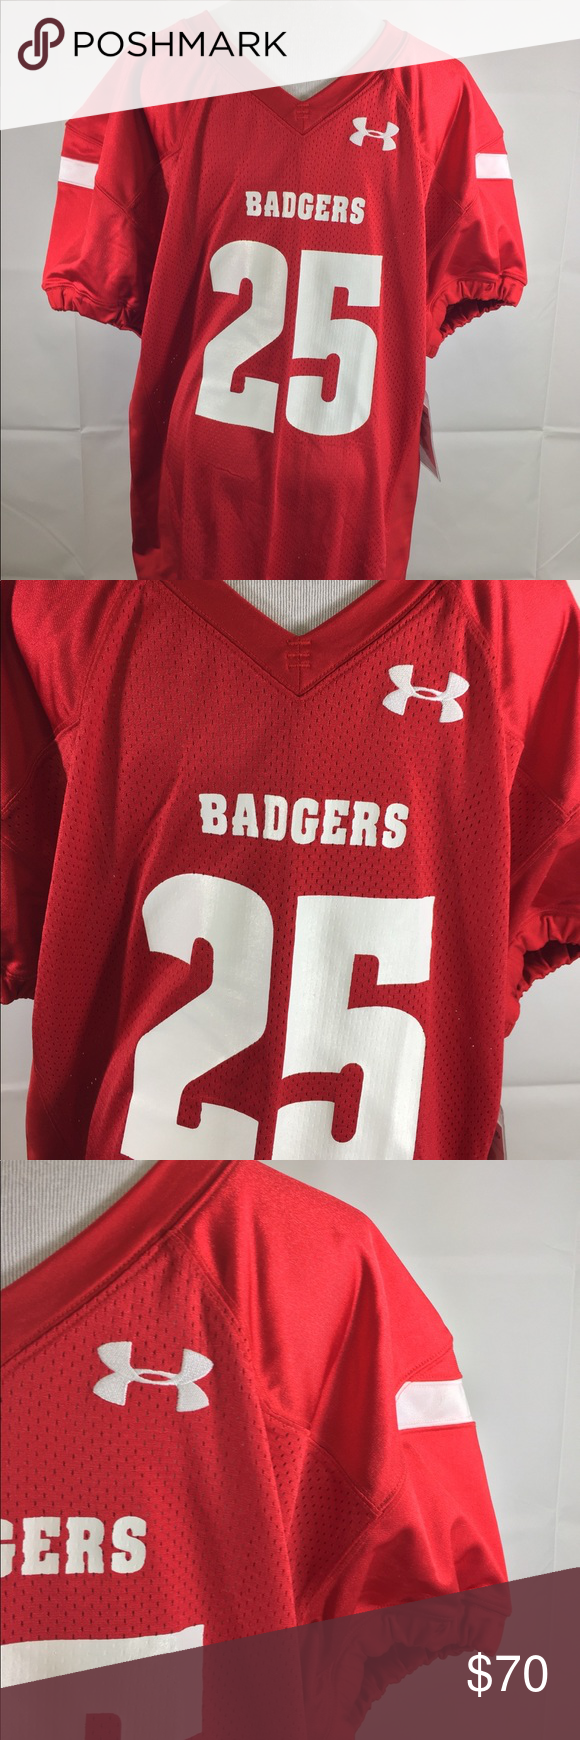 best cheap c2355 df04d Under Armour Wisconsin Badgers Jersey #25 Large NWT in 2018 ...